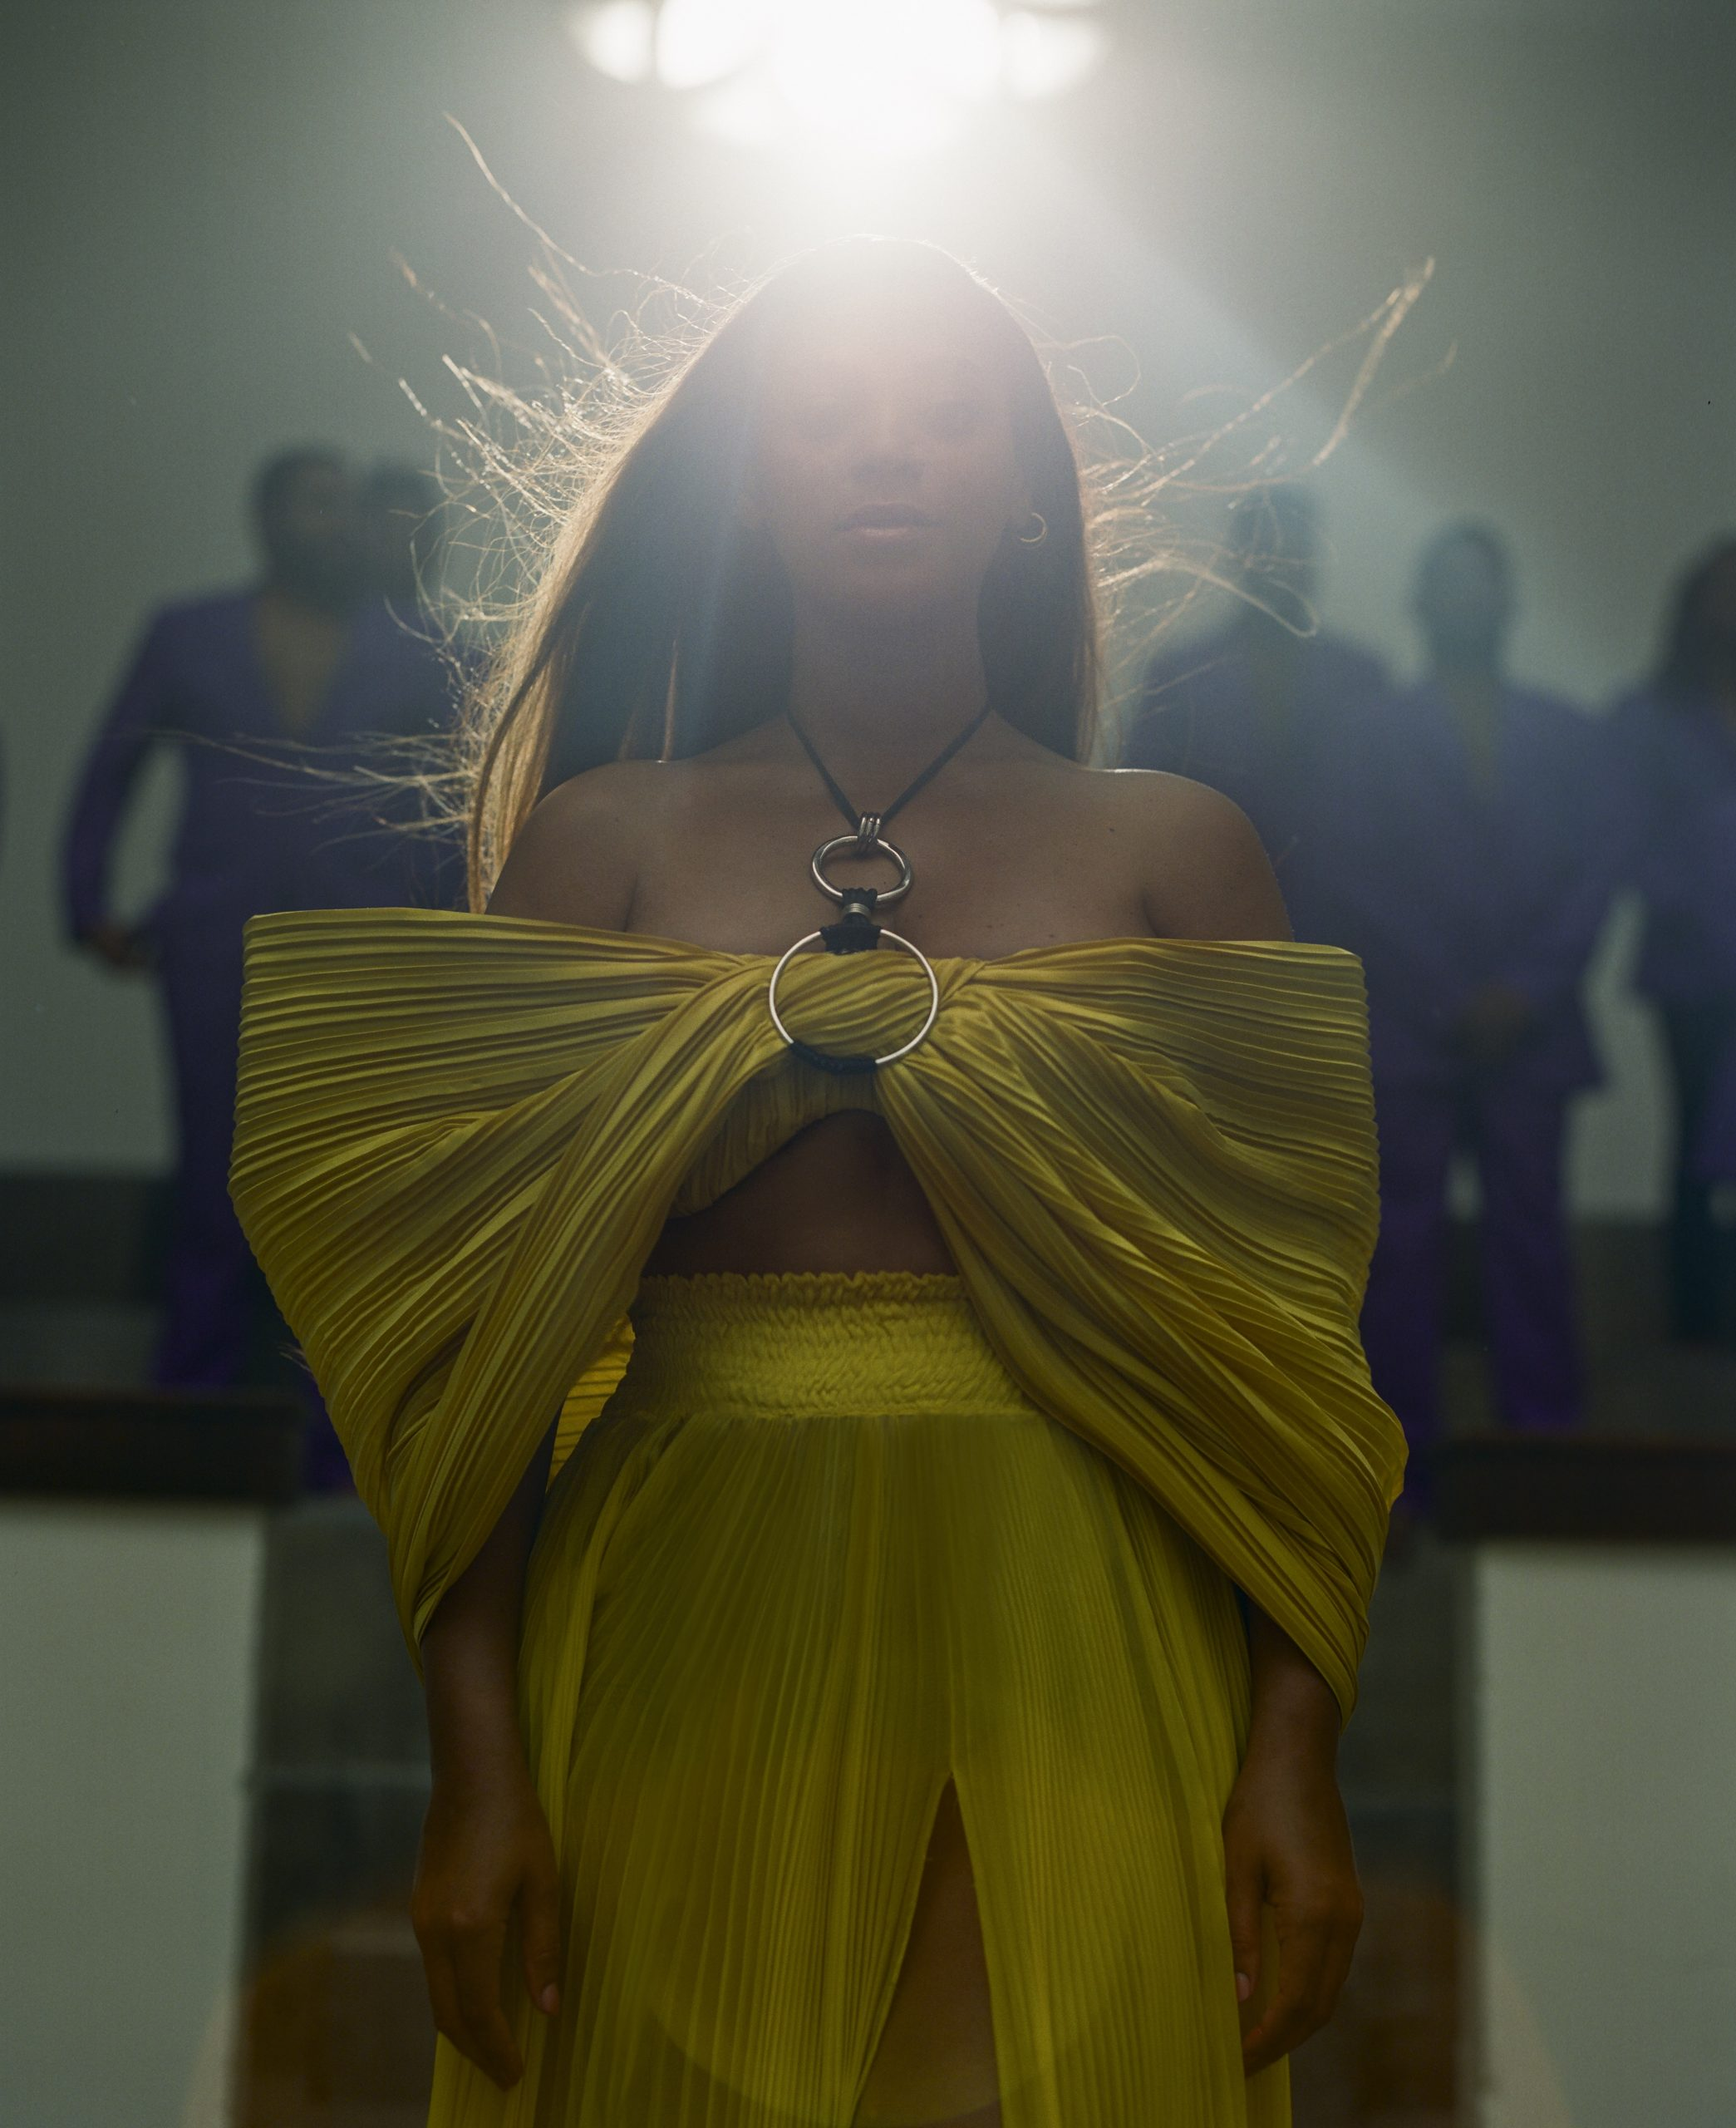 Beyonce Releases Visual Album, 'Black Is King' And Music Video 'Already'